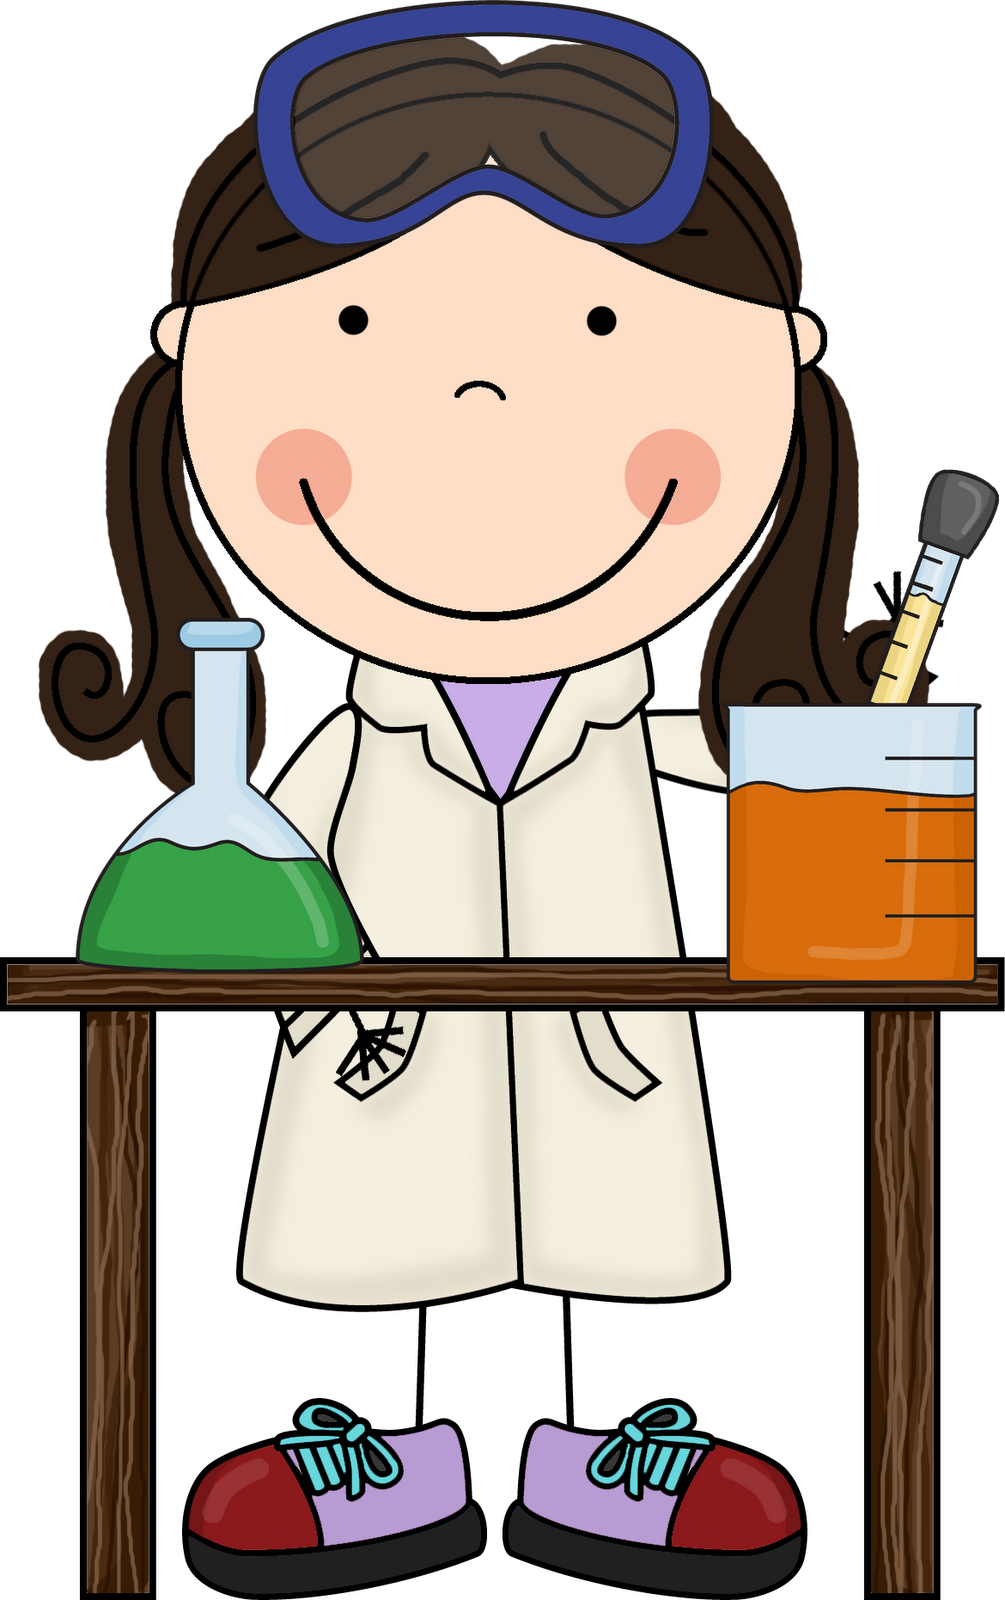 Lab clipart scientific inquiry. Free science kids download